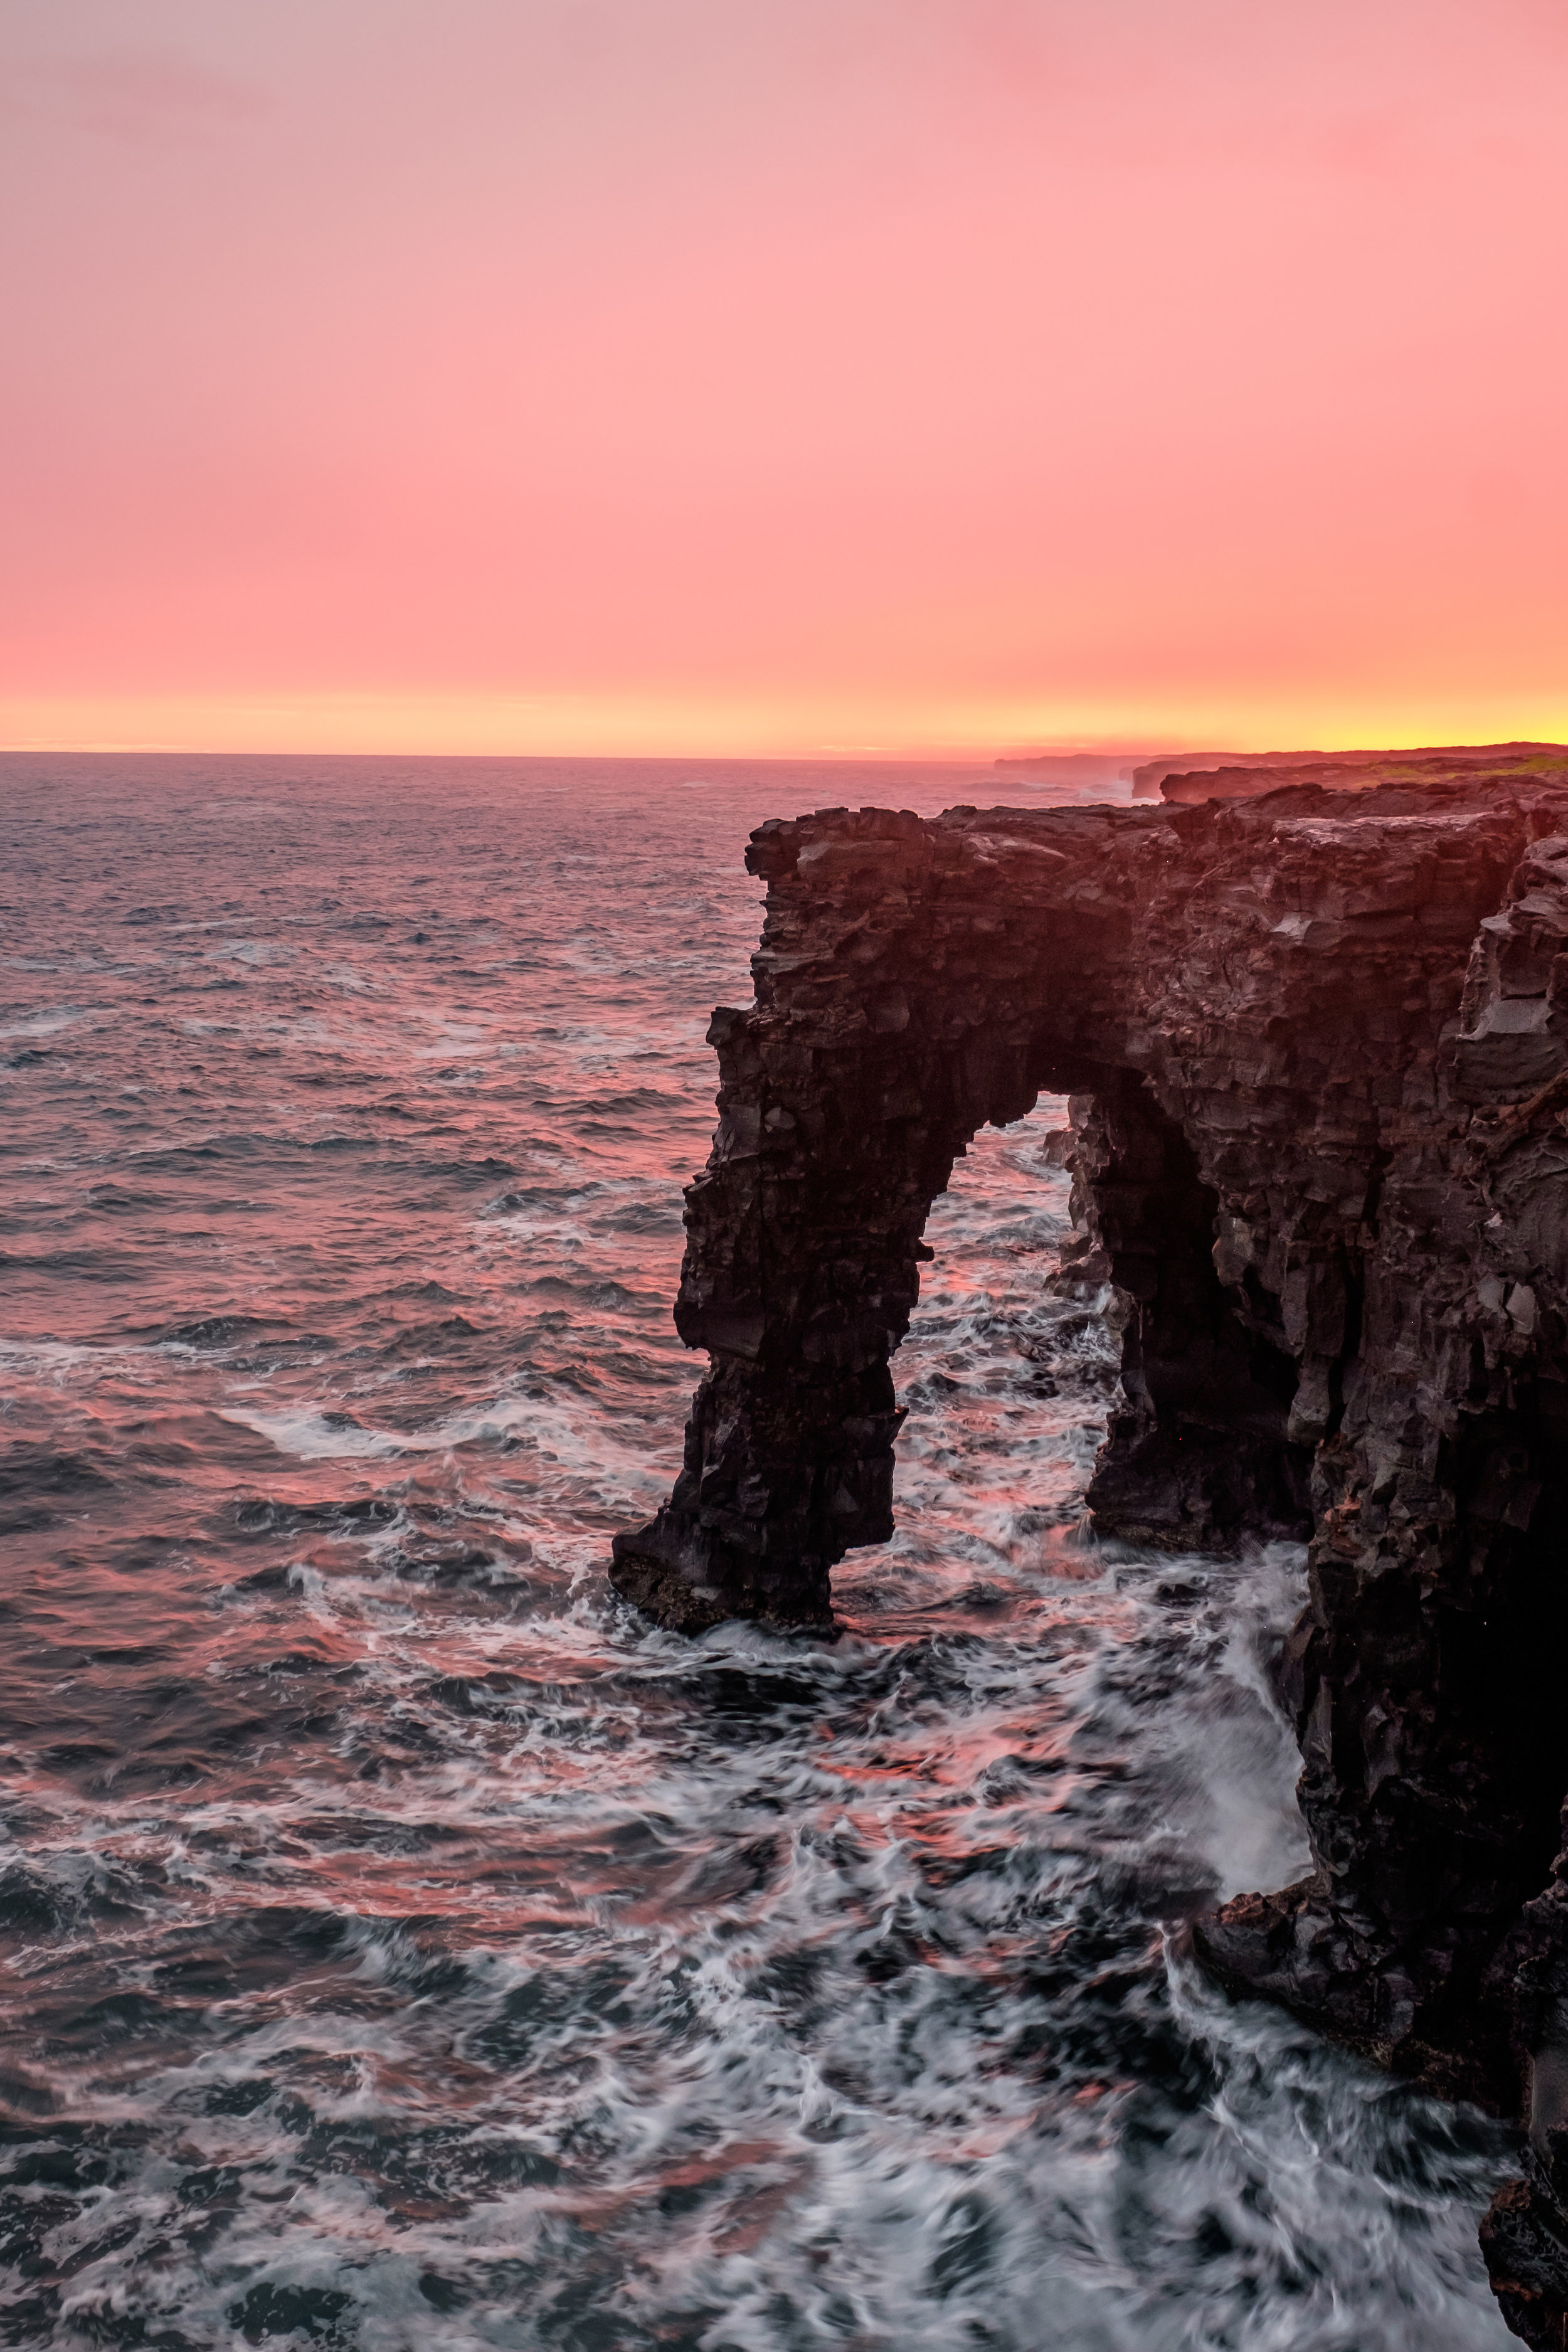 The Hōlei Sea Arch warmed at sunset.